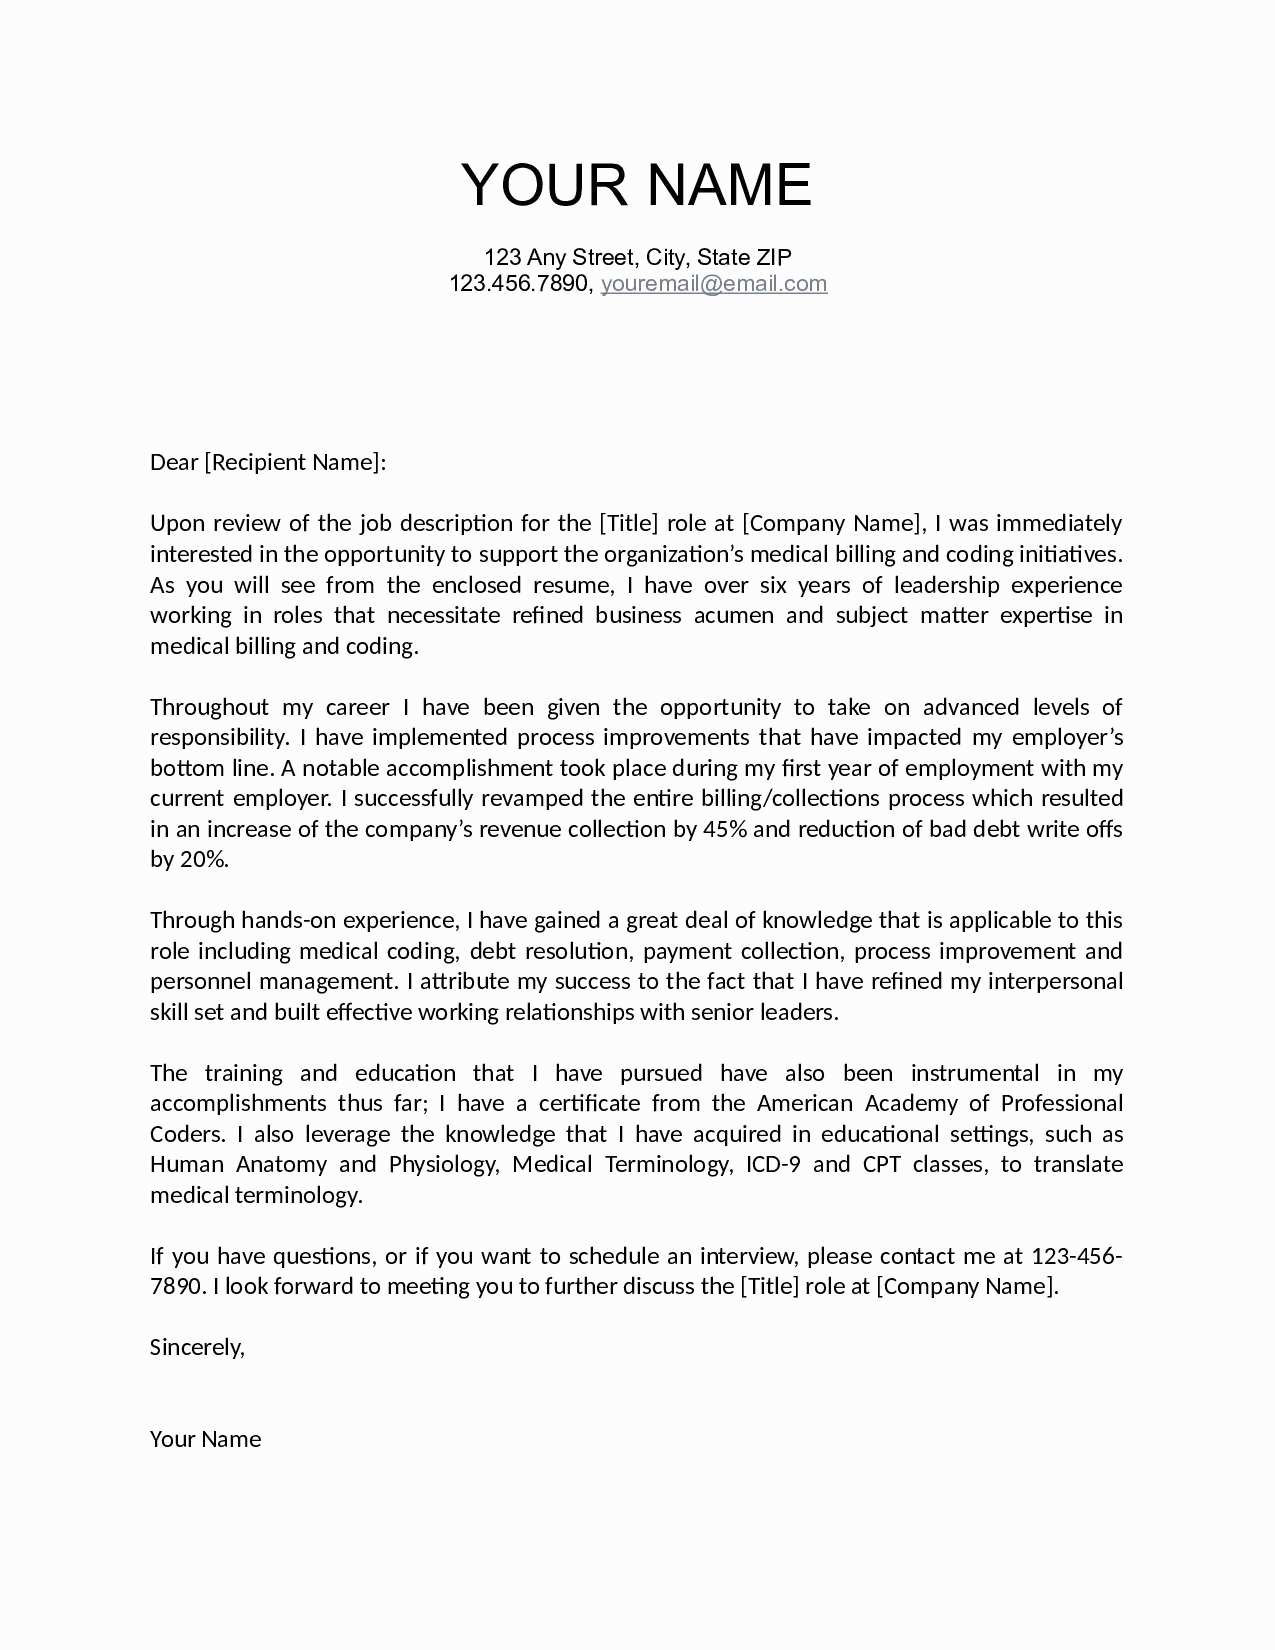 mortgage commitment letter template example-Mortgage mitment Letter Sample Lovely Job Fer Letter Template Us Copy Od Consultant Cover Letter Fungram 20-b